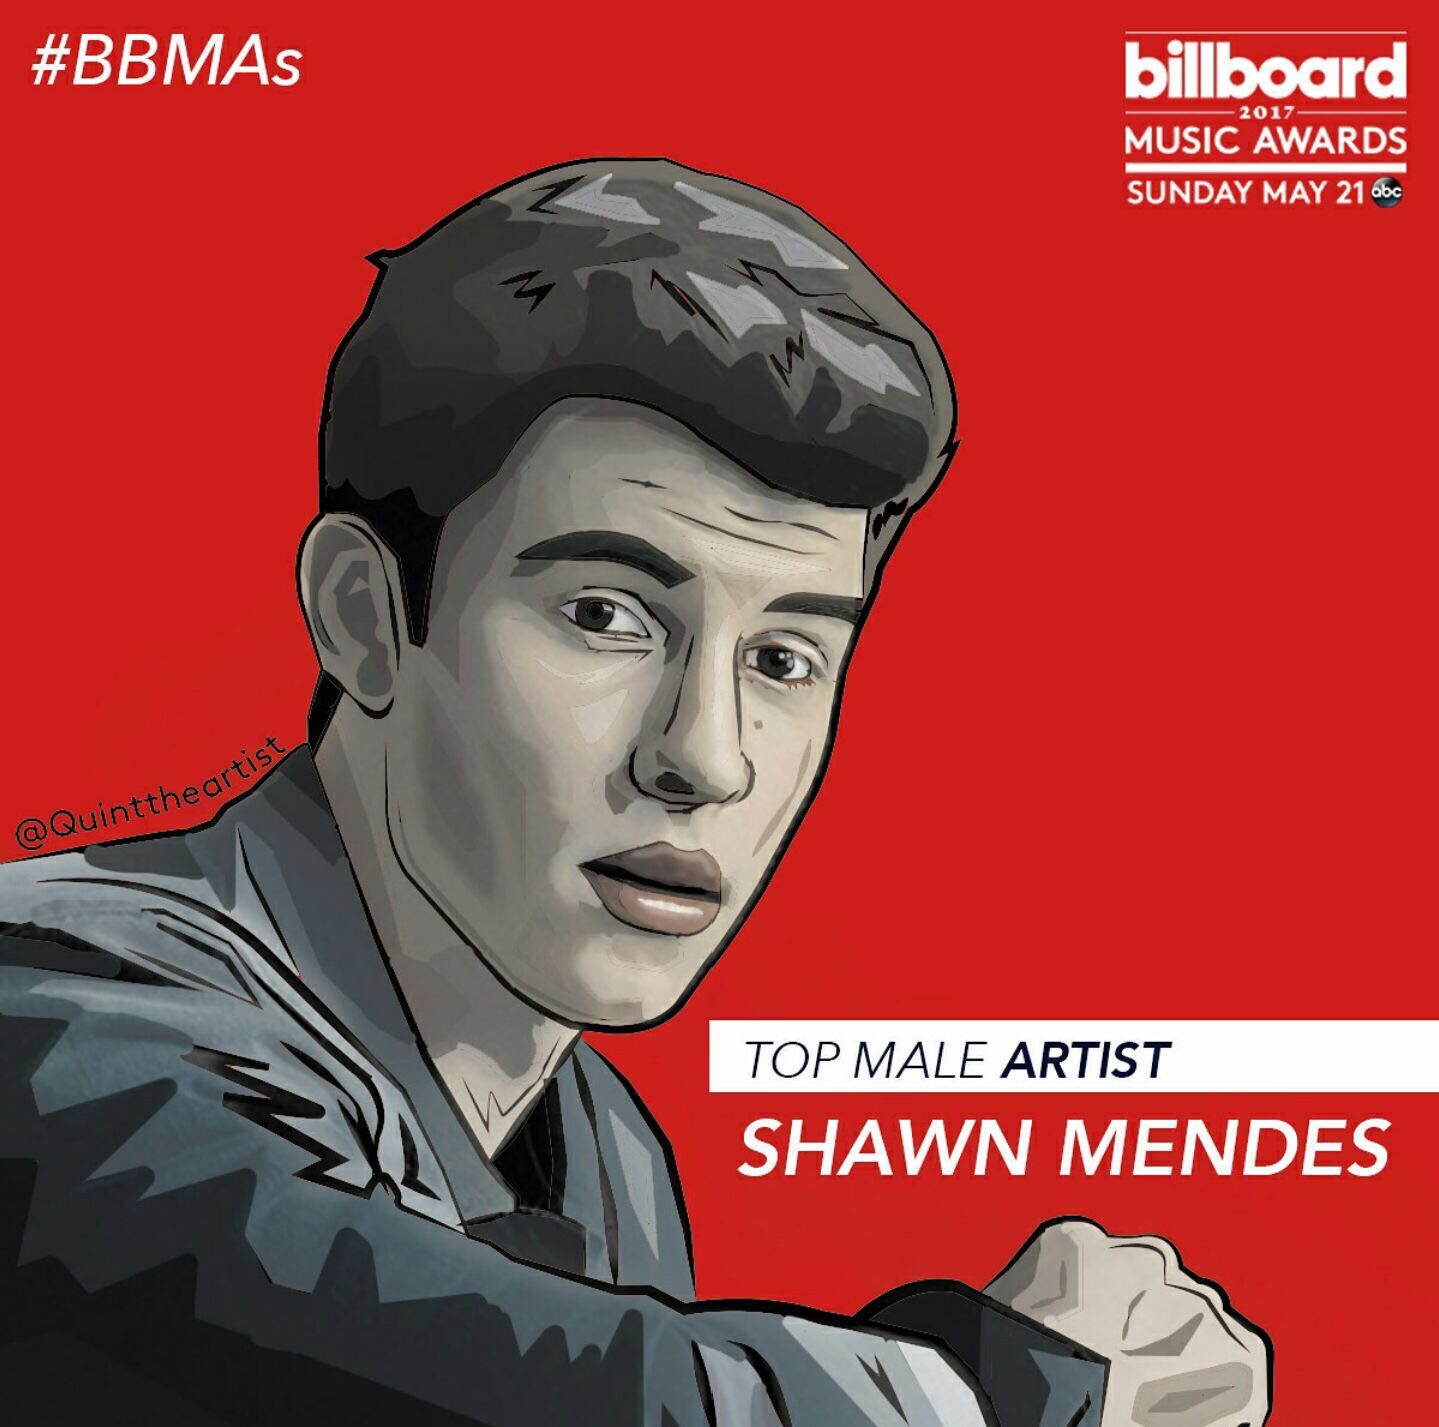 Shawn Mendes top male artist